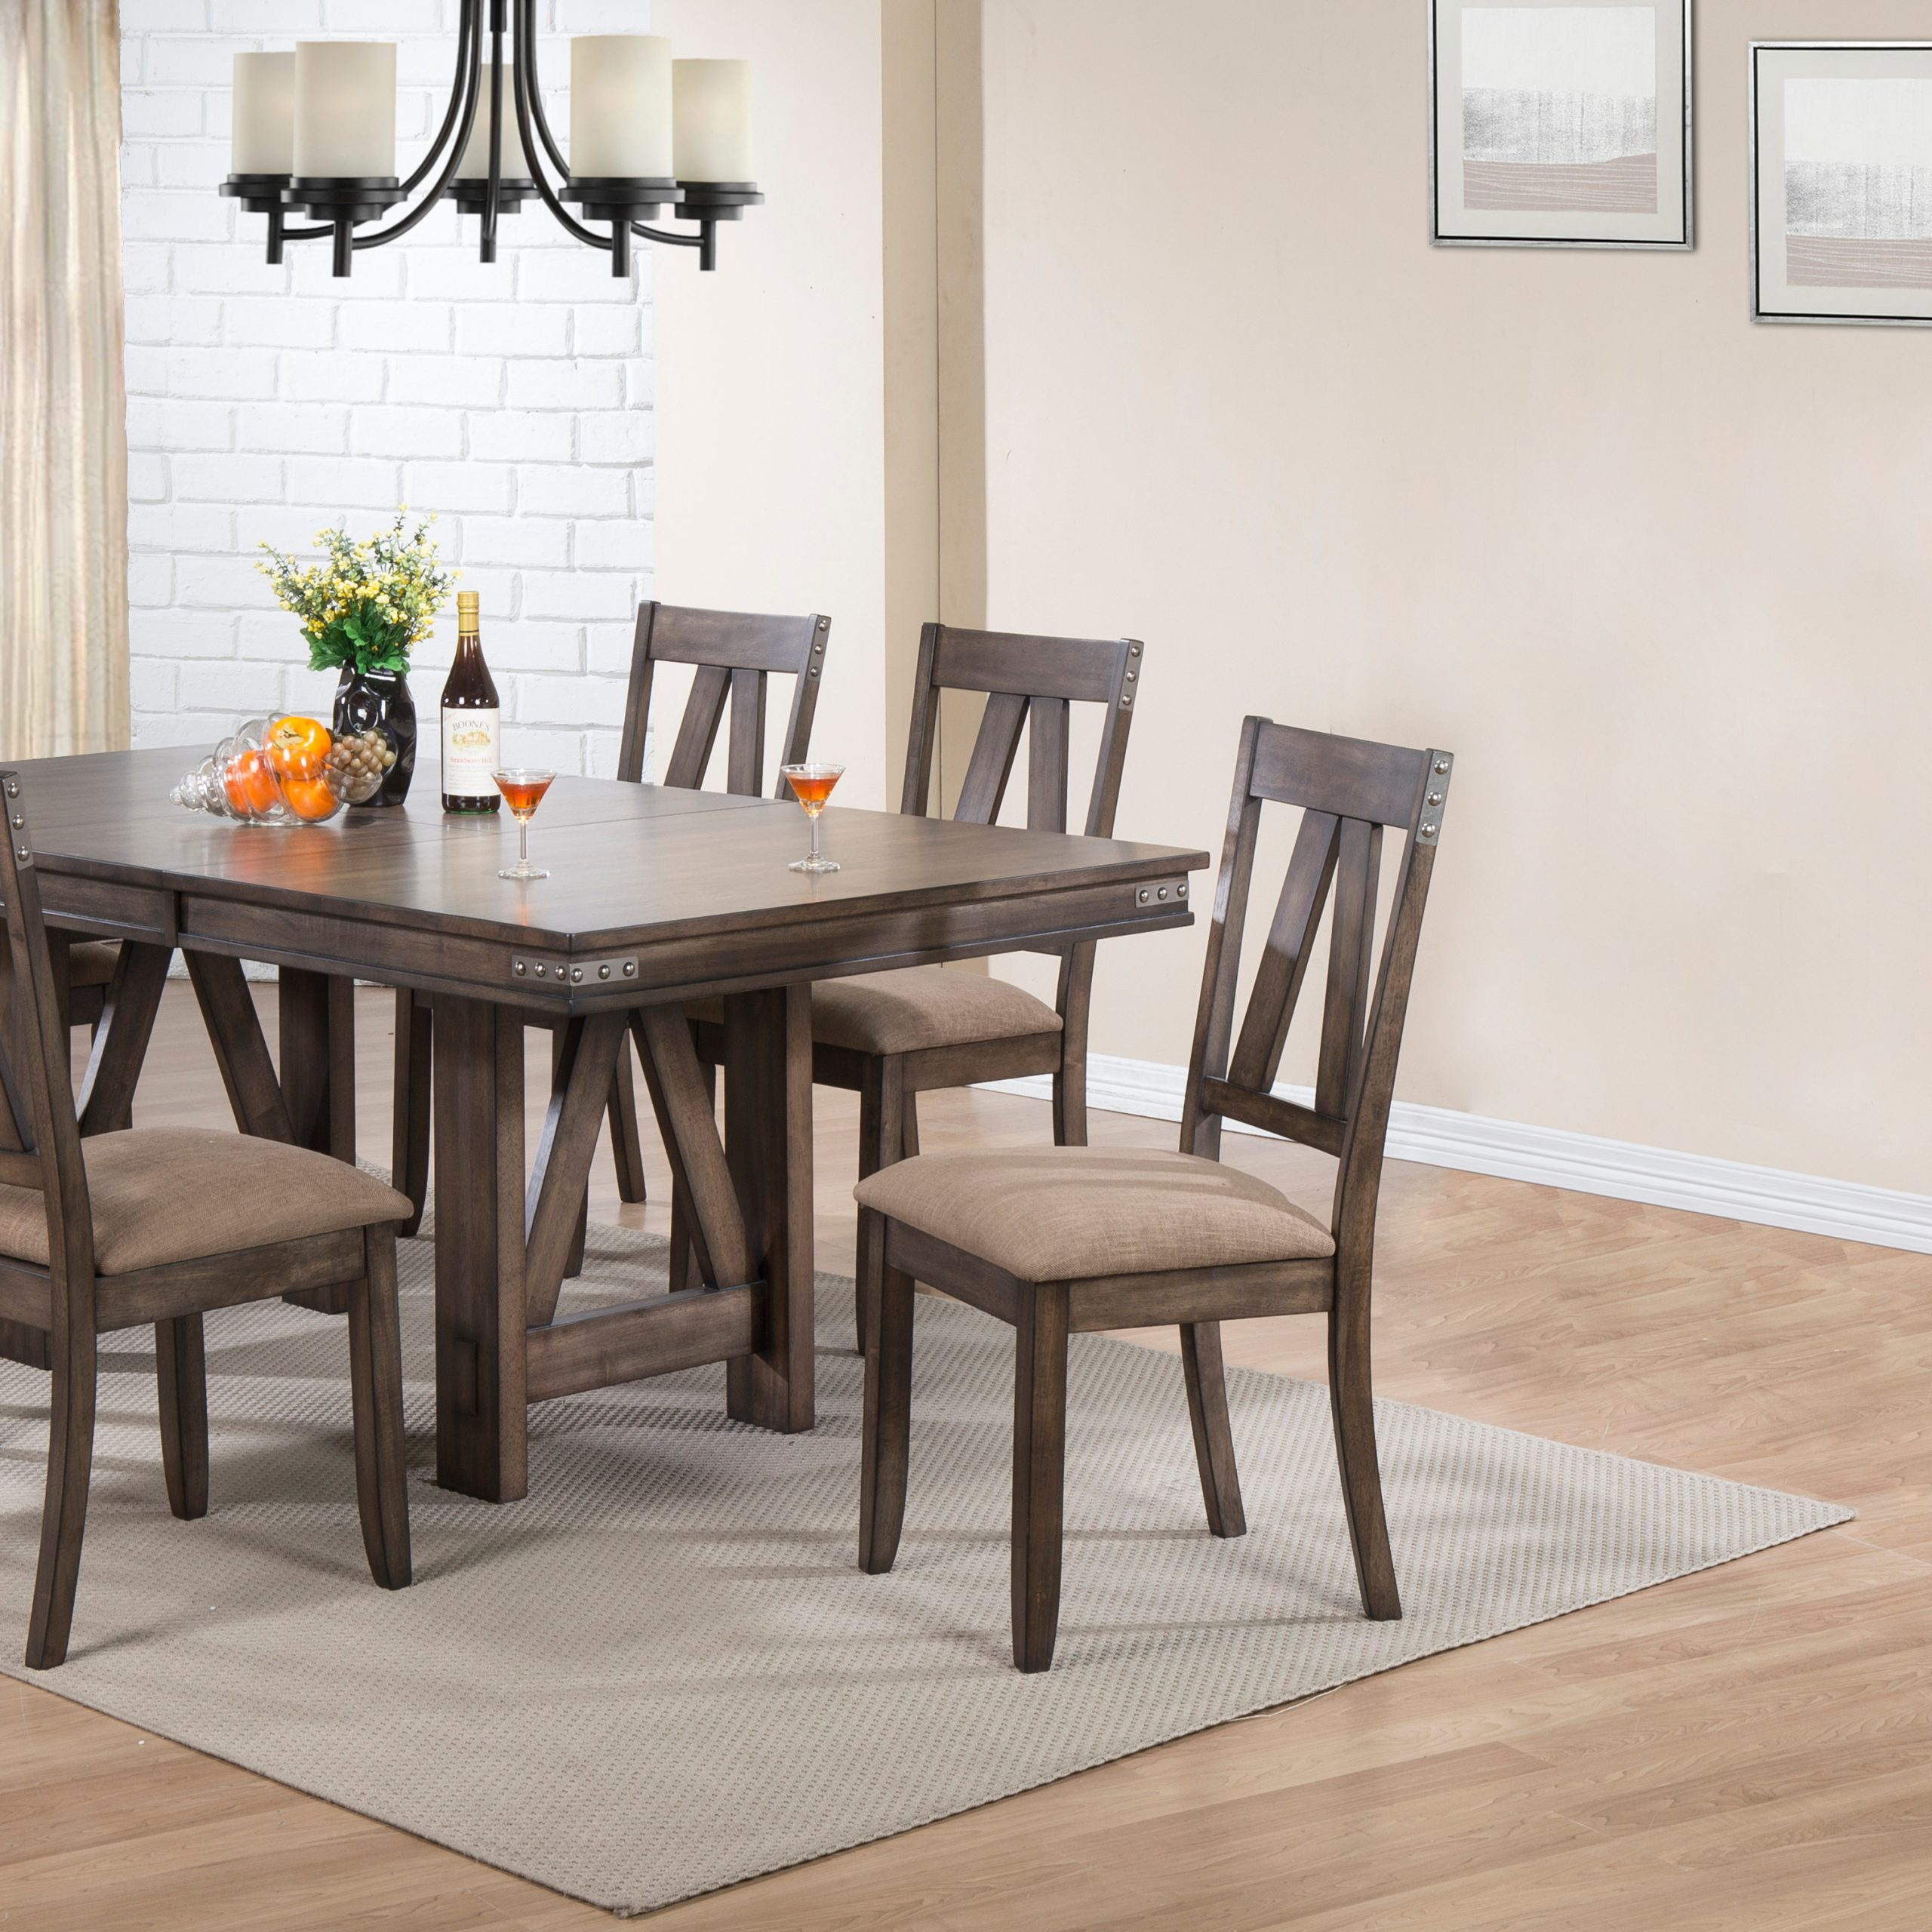 Newest Tudor City 28'' Dining Tables Intended For Nets 7 Piece Formal Dining Room Set, Brown Wood (View 4 of 20)